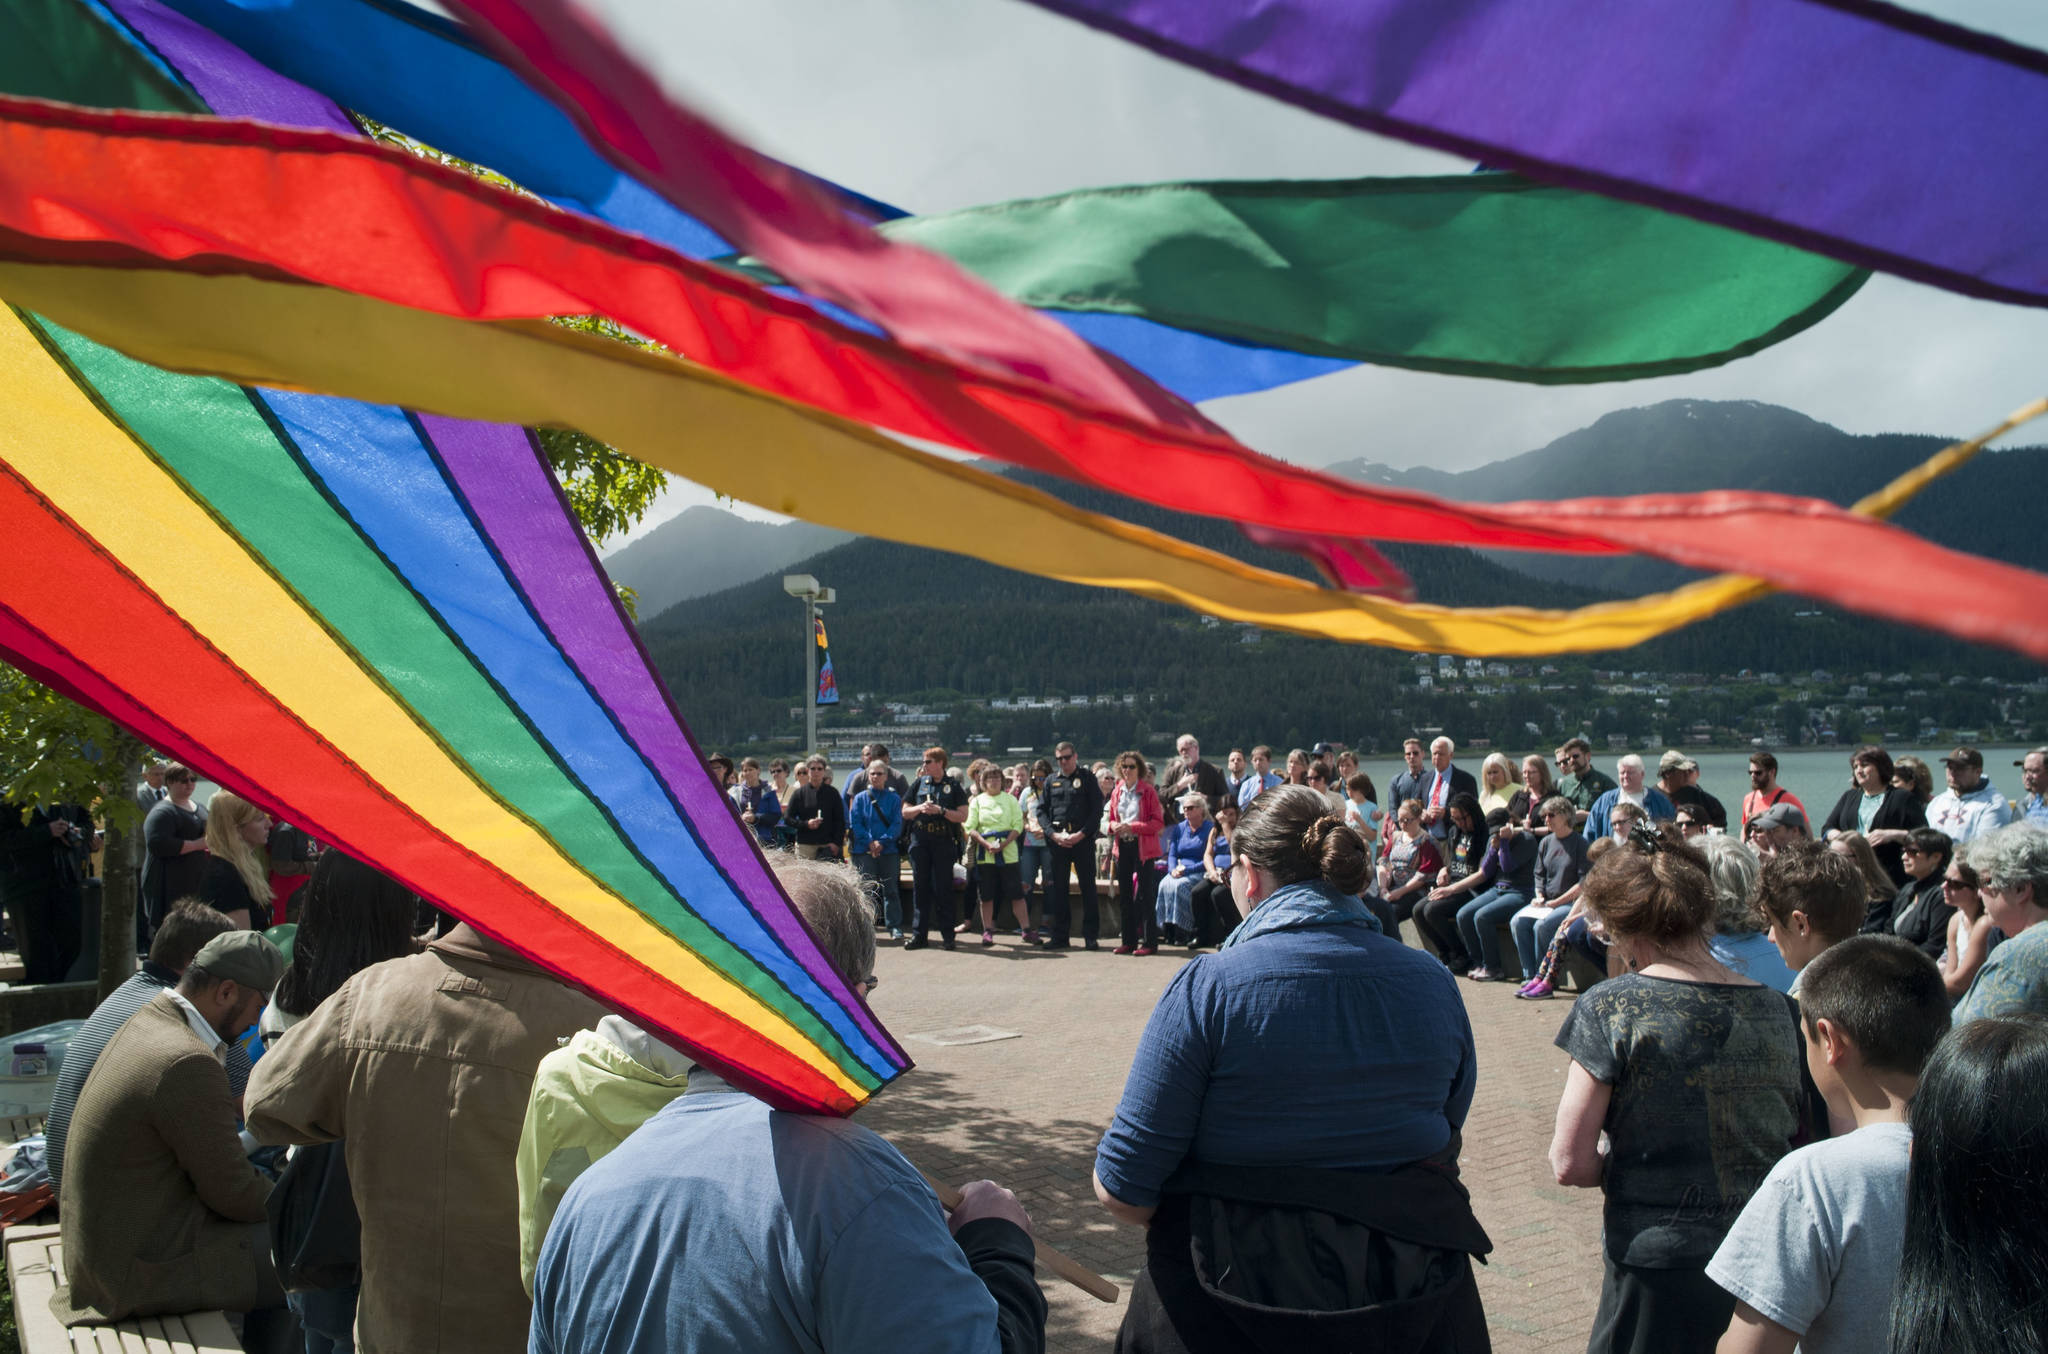 In this June 2016 photo, Juneau residents attend a vigil at Marine Park. Tuesday evening there will be a candlelight vigil and documentary screening in recognition of Trans Day of Remembrance, a national event held in light of the violence transgender and gender nonconforming people face. (Michael Penn | Juneau Empire File)